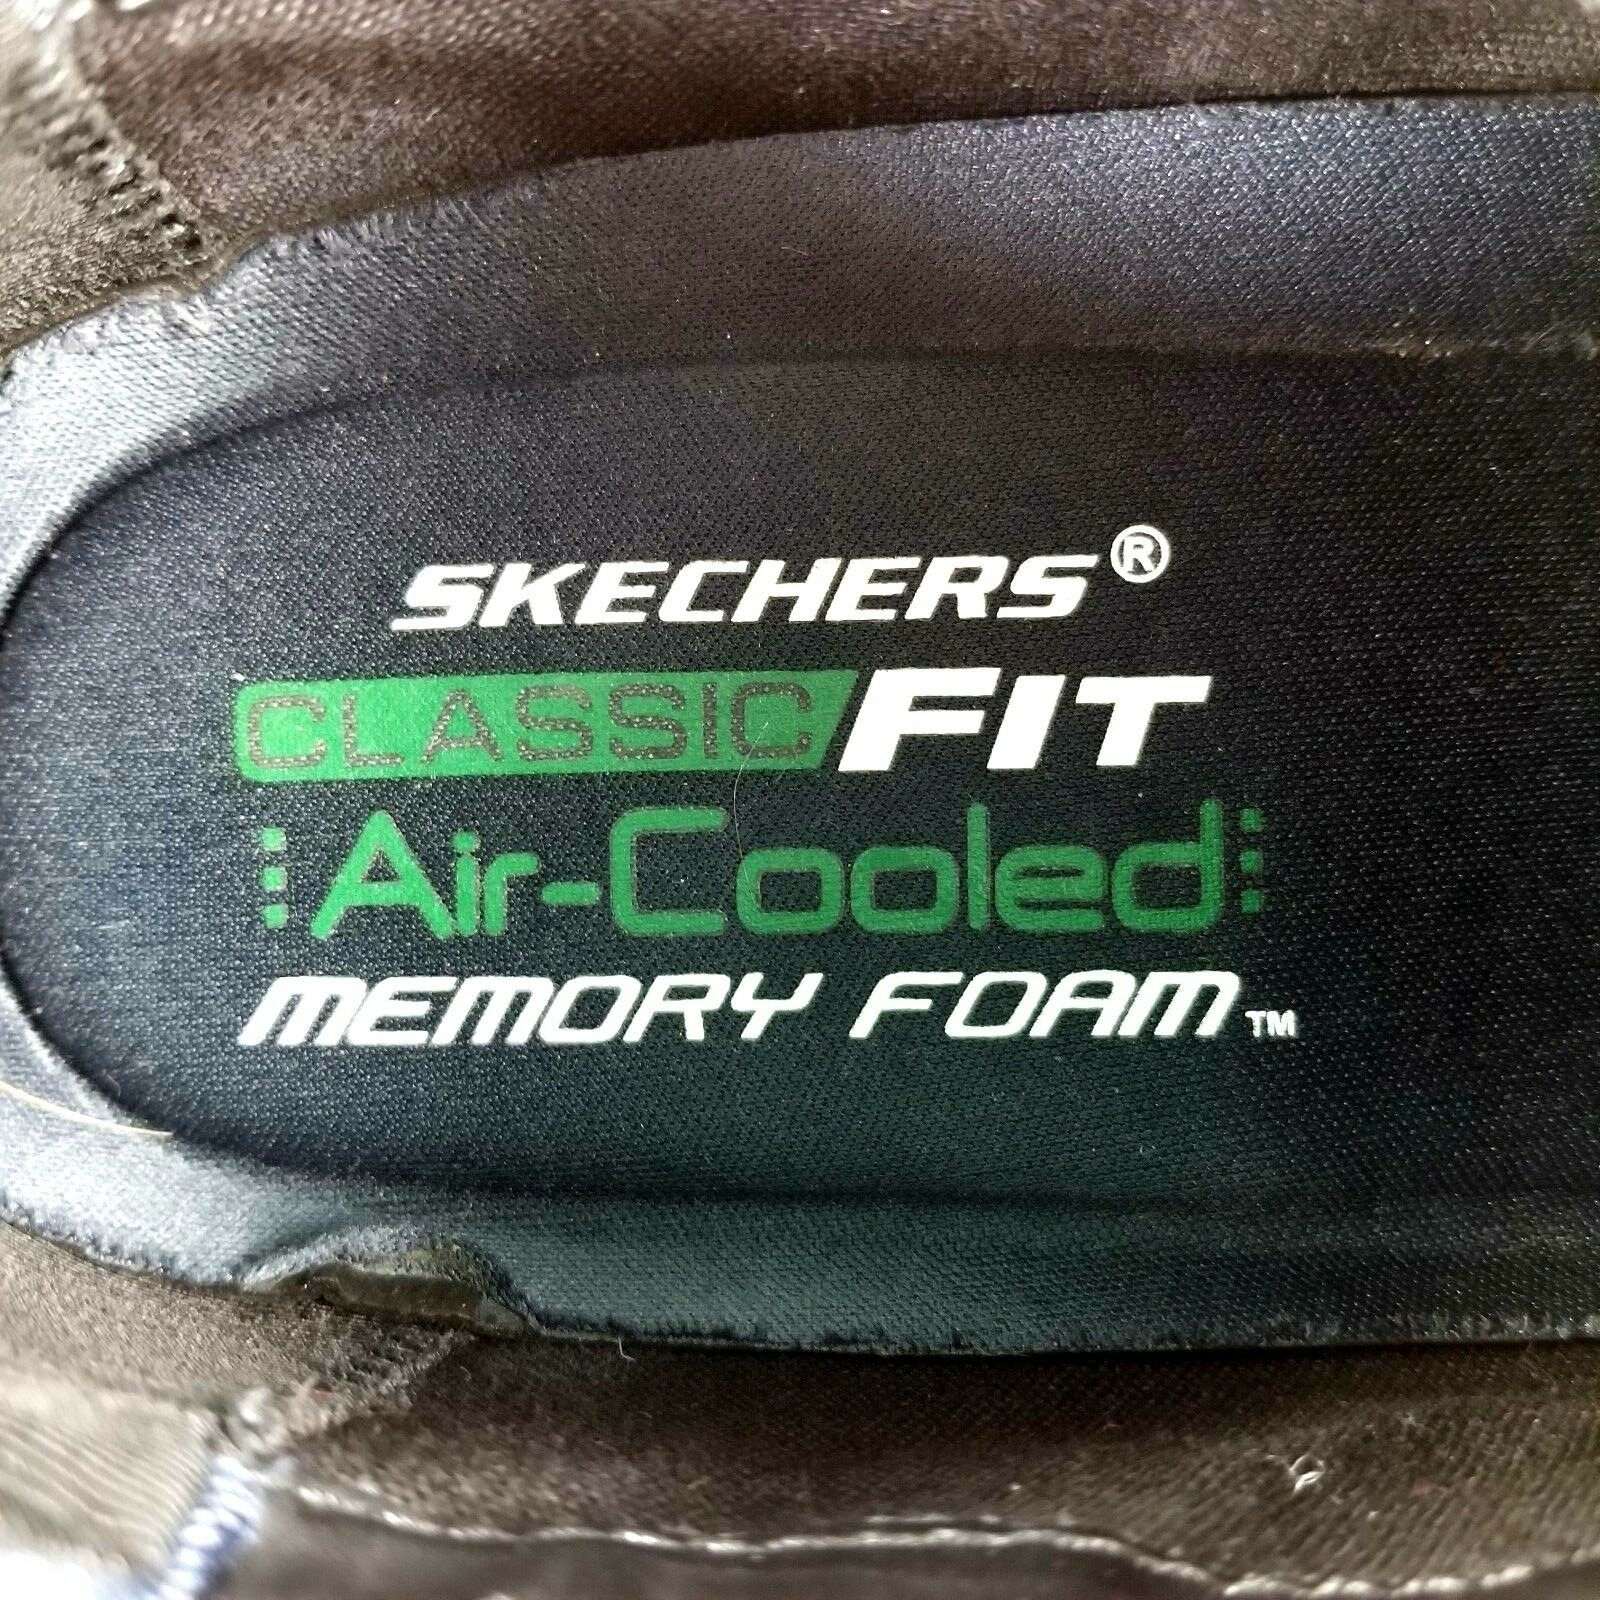 Skechers Mens Shoes Size 13 Classic Fit Oxford Black Lace Up Leather / Synthetic